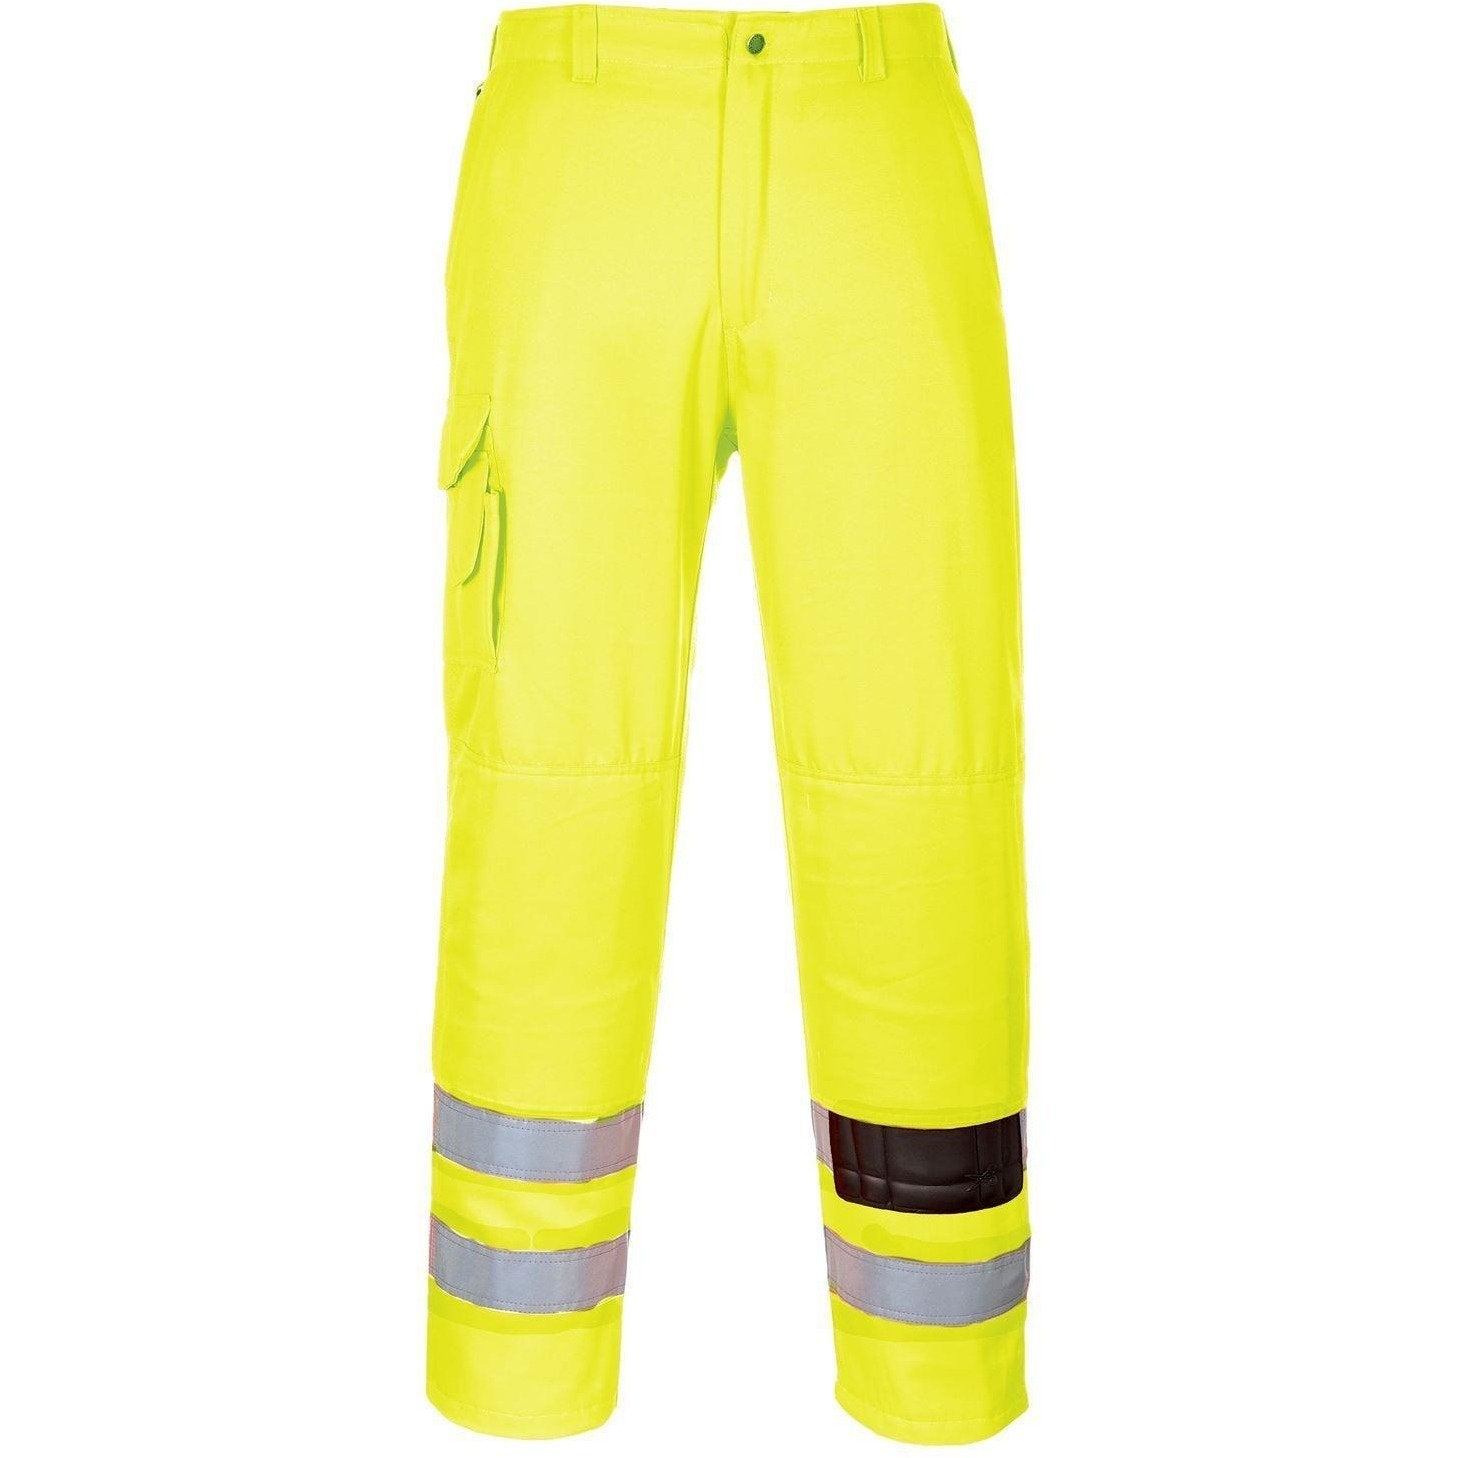 Portwest Hi-Vis Combat Trousers E046 - reid outdoors